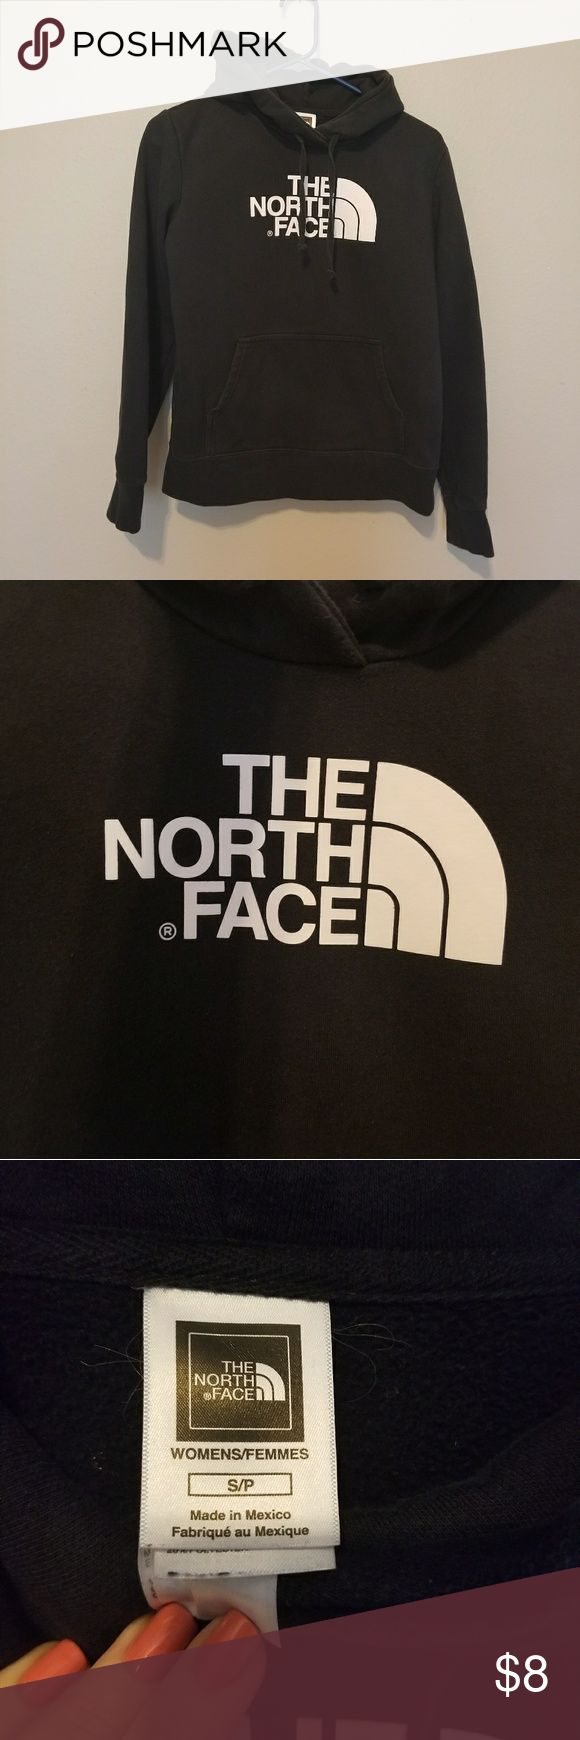 The North Face hoodie Black North Face hoodie. This hoodie is a faded black and does have signs of wash wear. Not so much piling, but the hood strings look worn and the black has faded. Logo still looks perfect with no cracking. The North Face Jackets & Coats